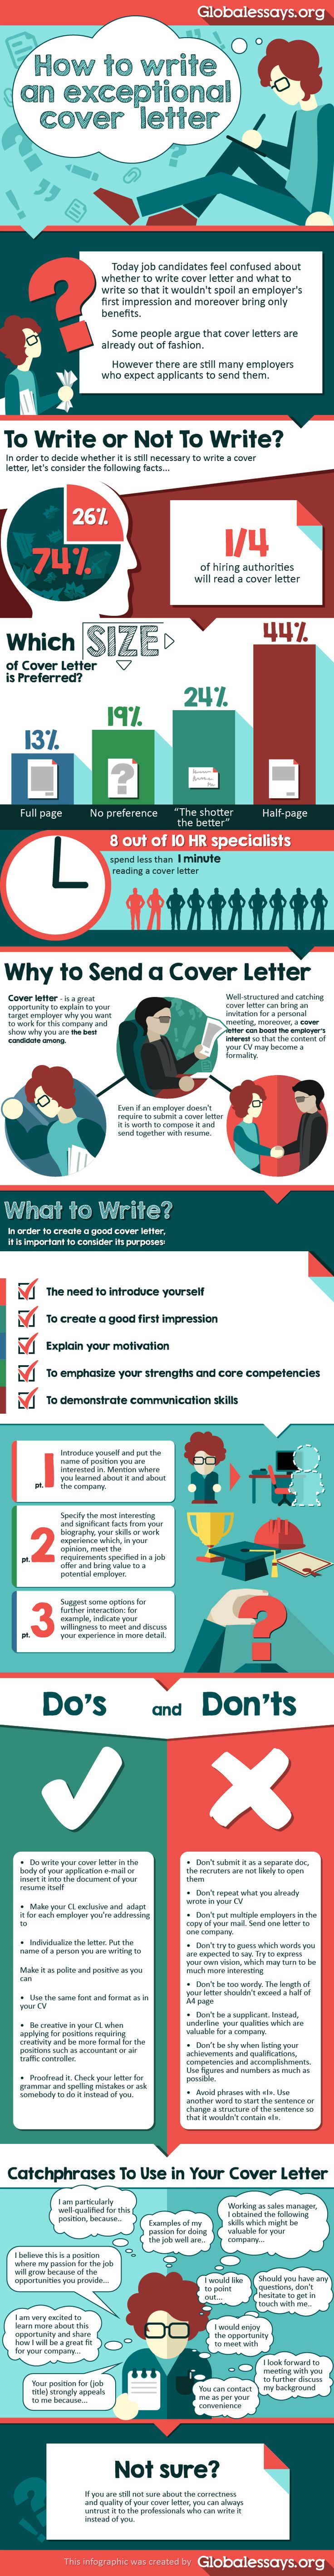 how to write an exceptional cover letter - How To Write A Cover Letter And Resume